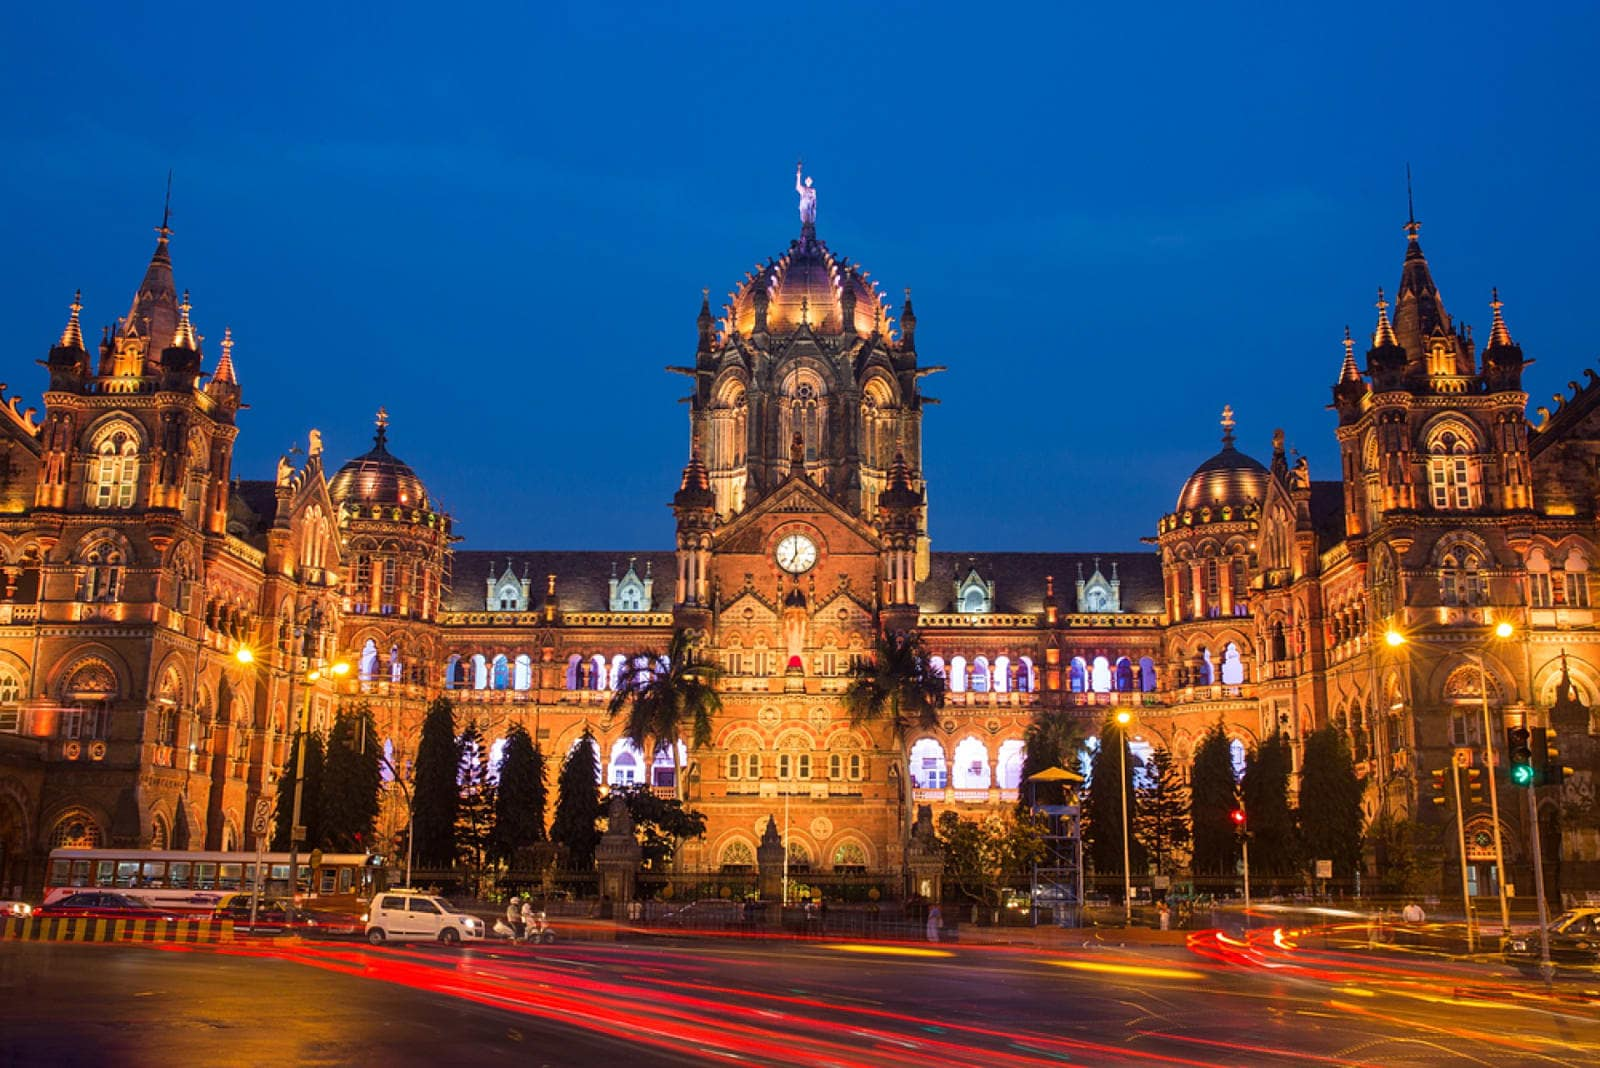 Which Of These Is An UNESCO World Heritage Site In Mumbai